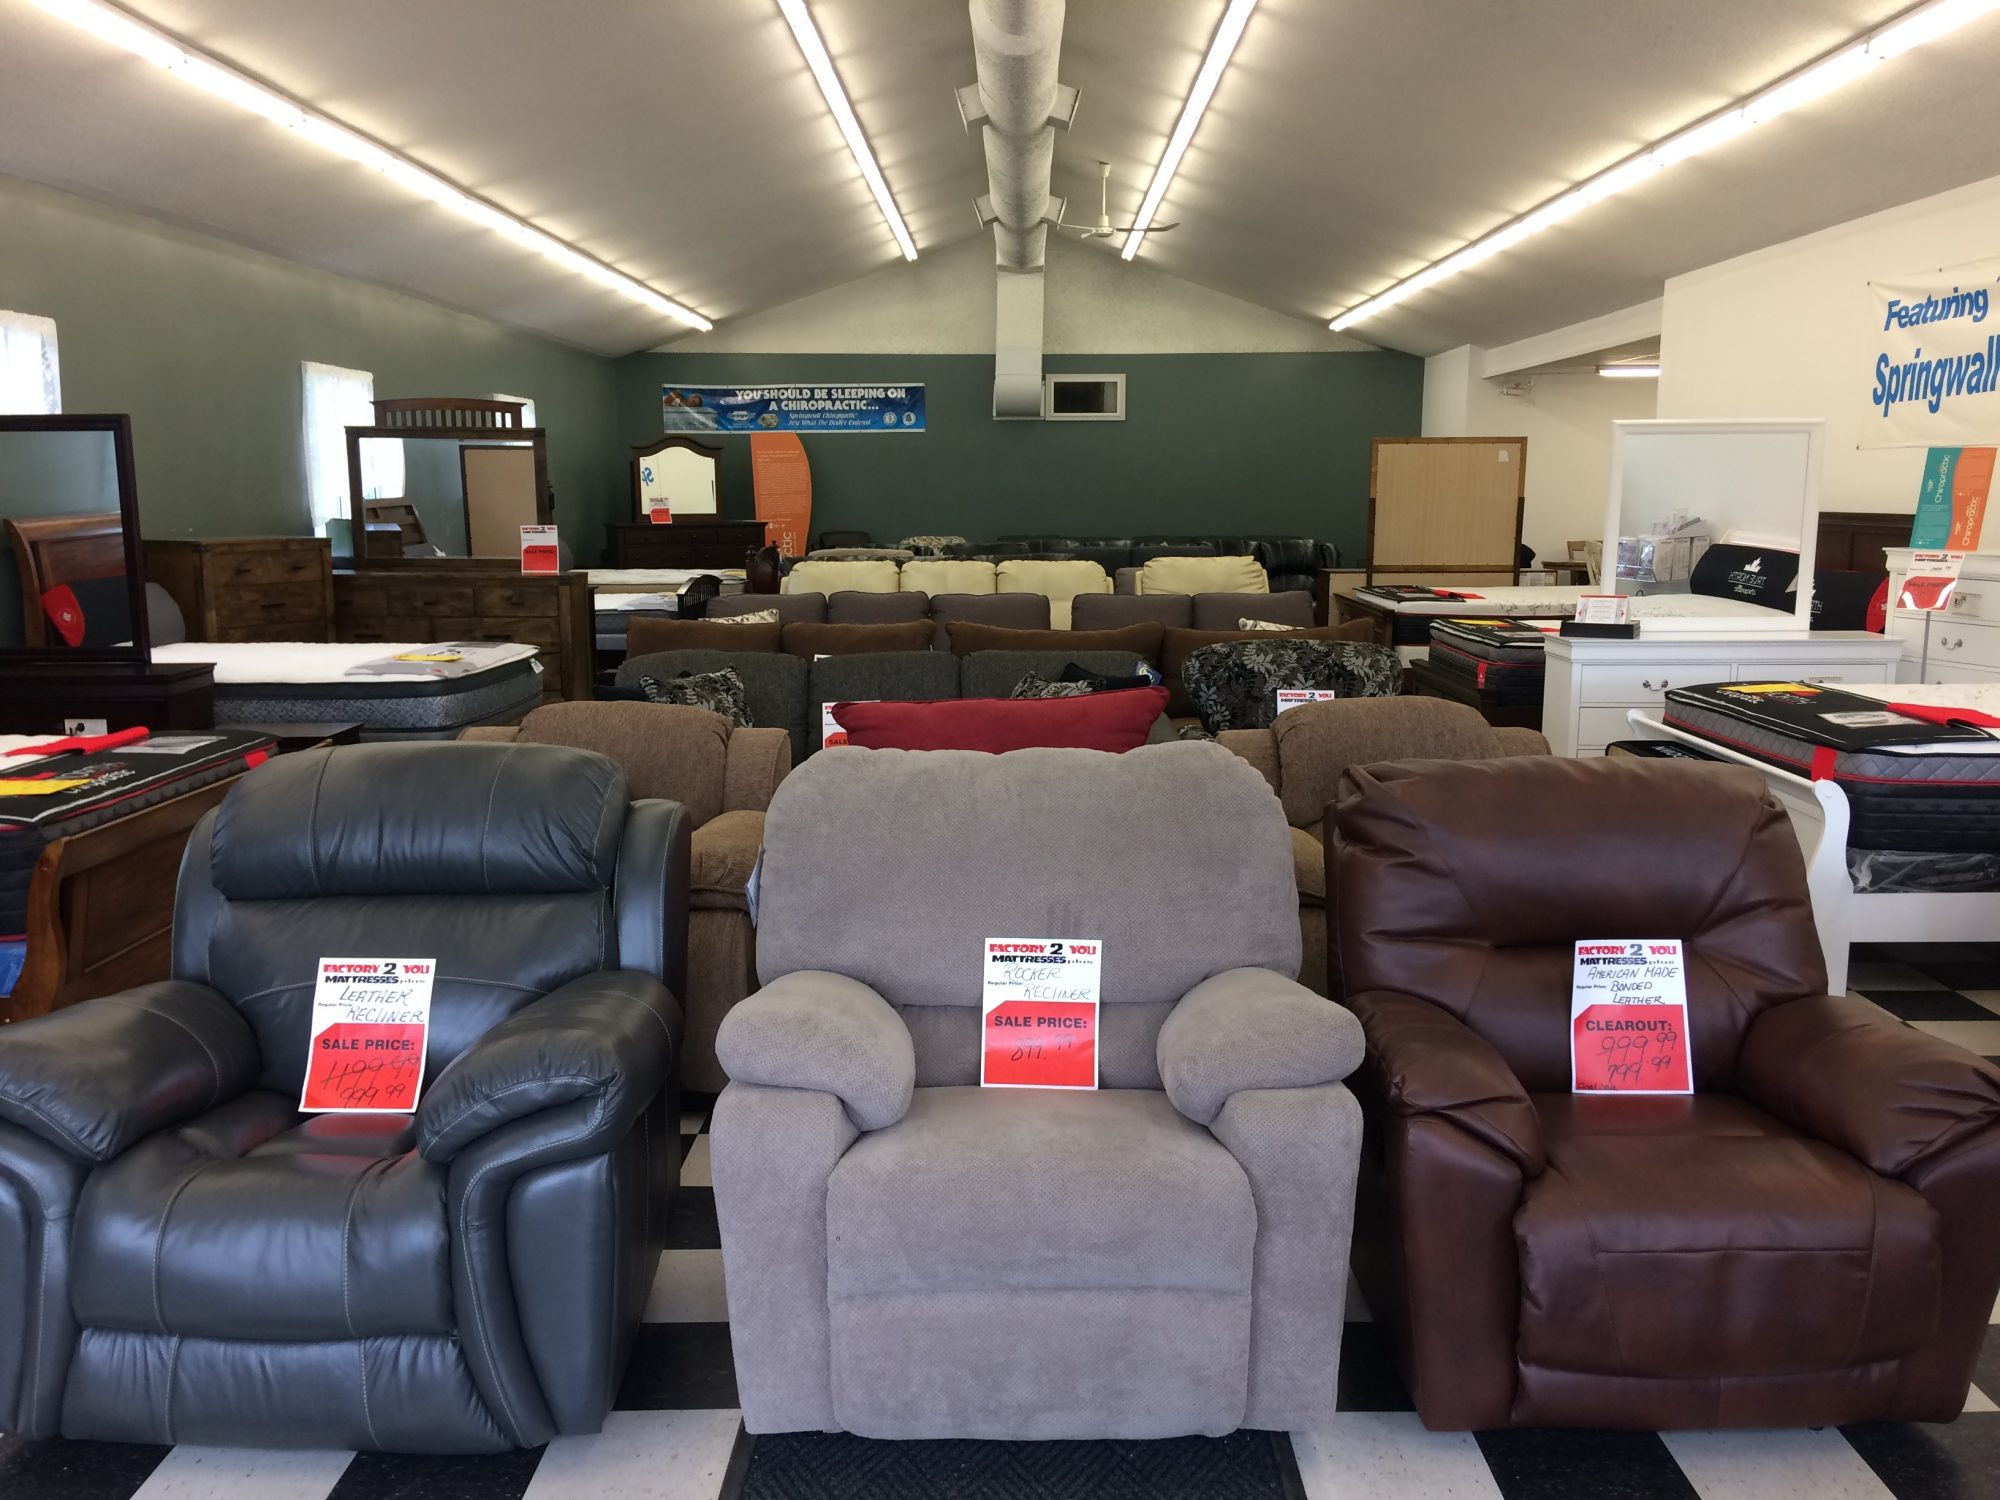 Mattresses And Home Furnishings Best Prices Factory 2 You Mattresses